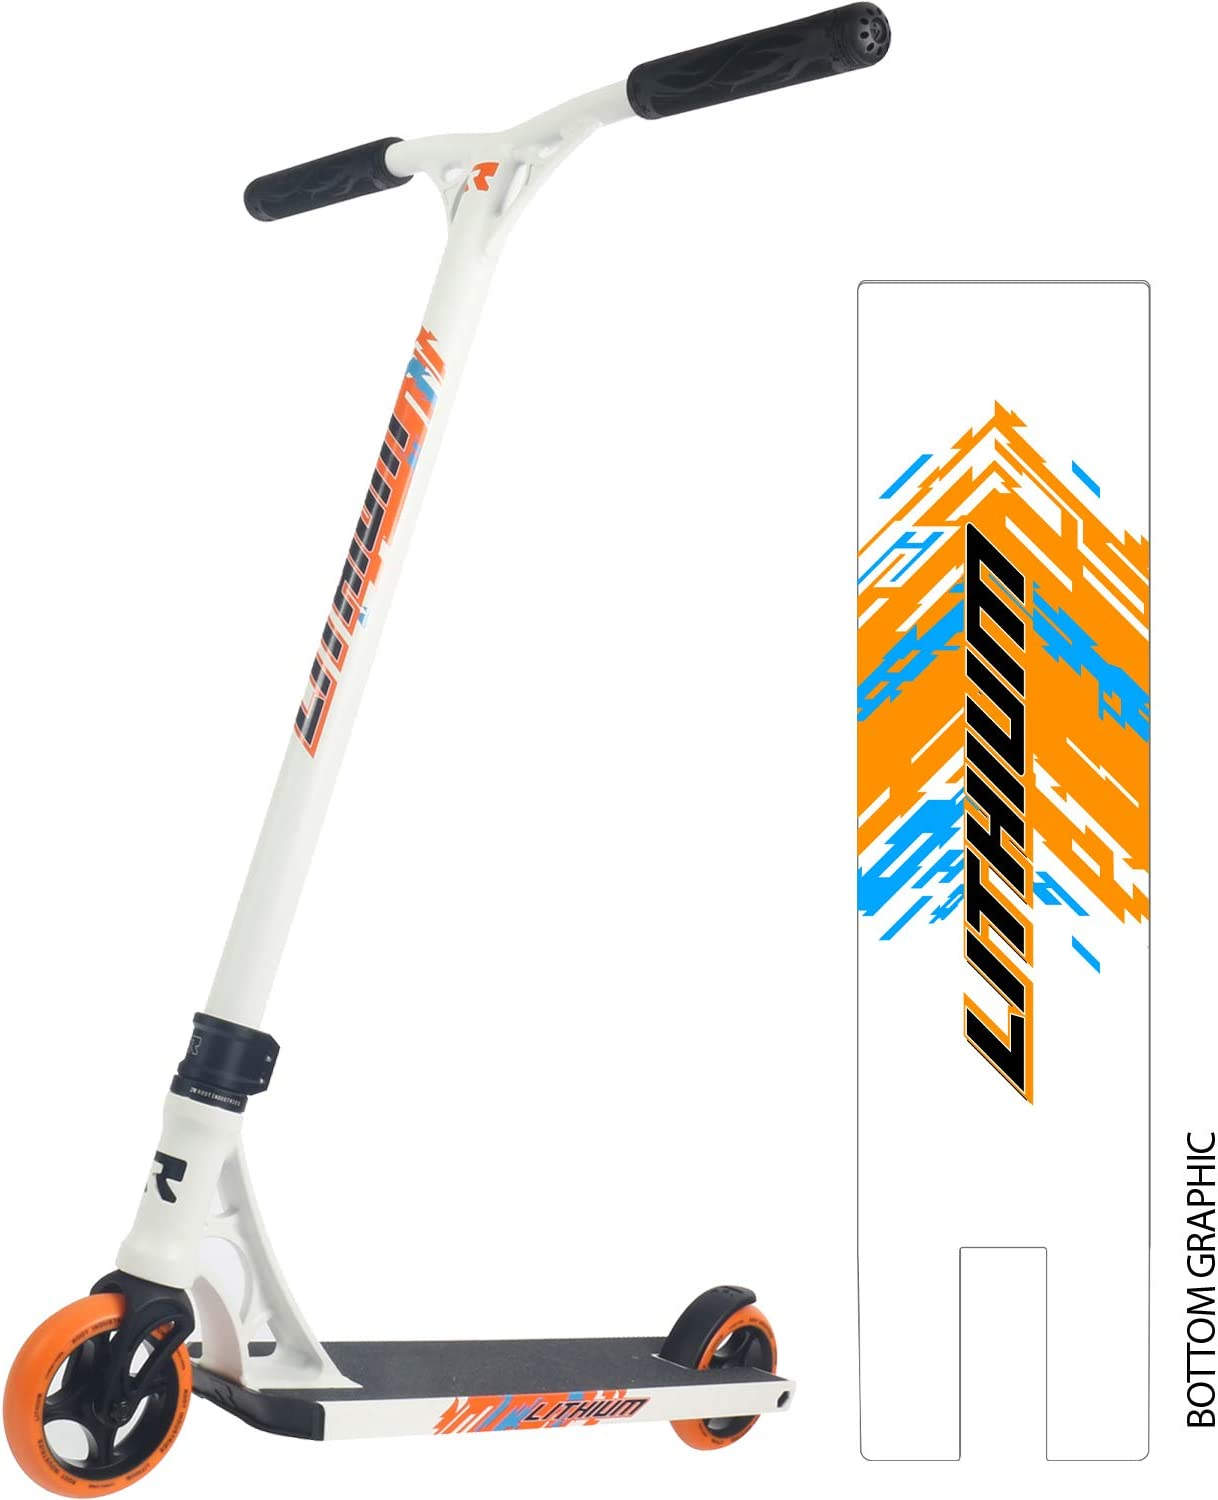 Stunt Scooters Pro Scooter Deck Pro Scooters for Kids Pro Scooters for Adults Ready to Ride Trick Scooter Lithium Complete Scooter Professional Scooter for any Age Rider Pro Scooter Wheels